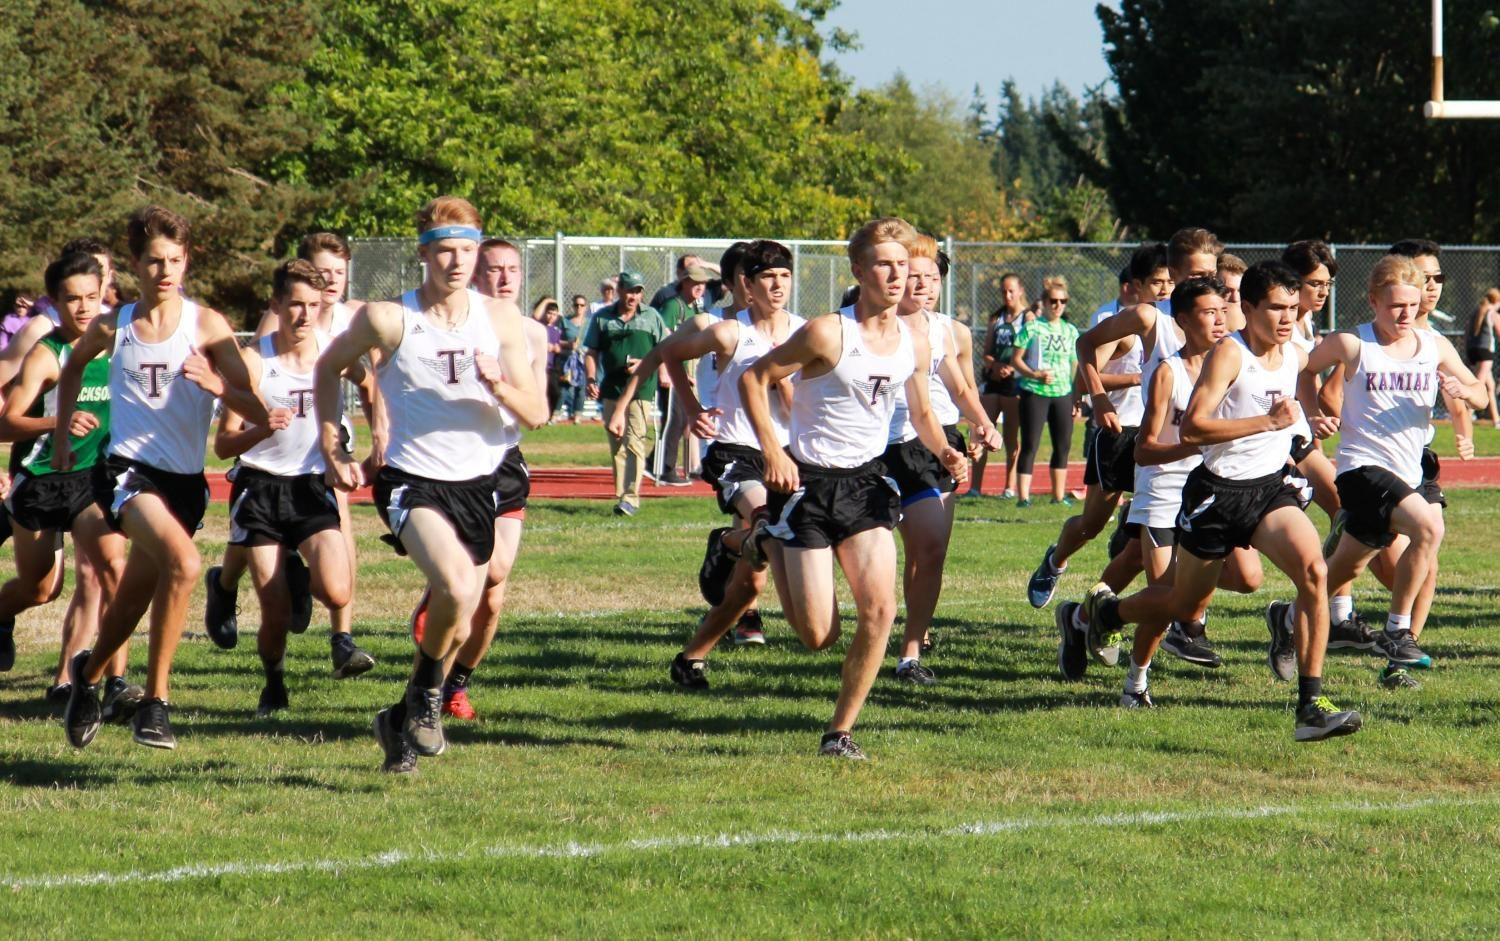 Hawks Cross Country faces off against tough 4A schools